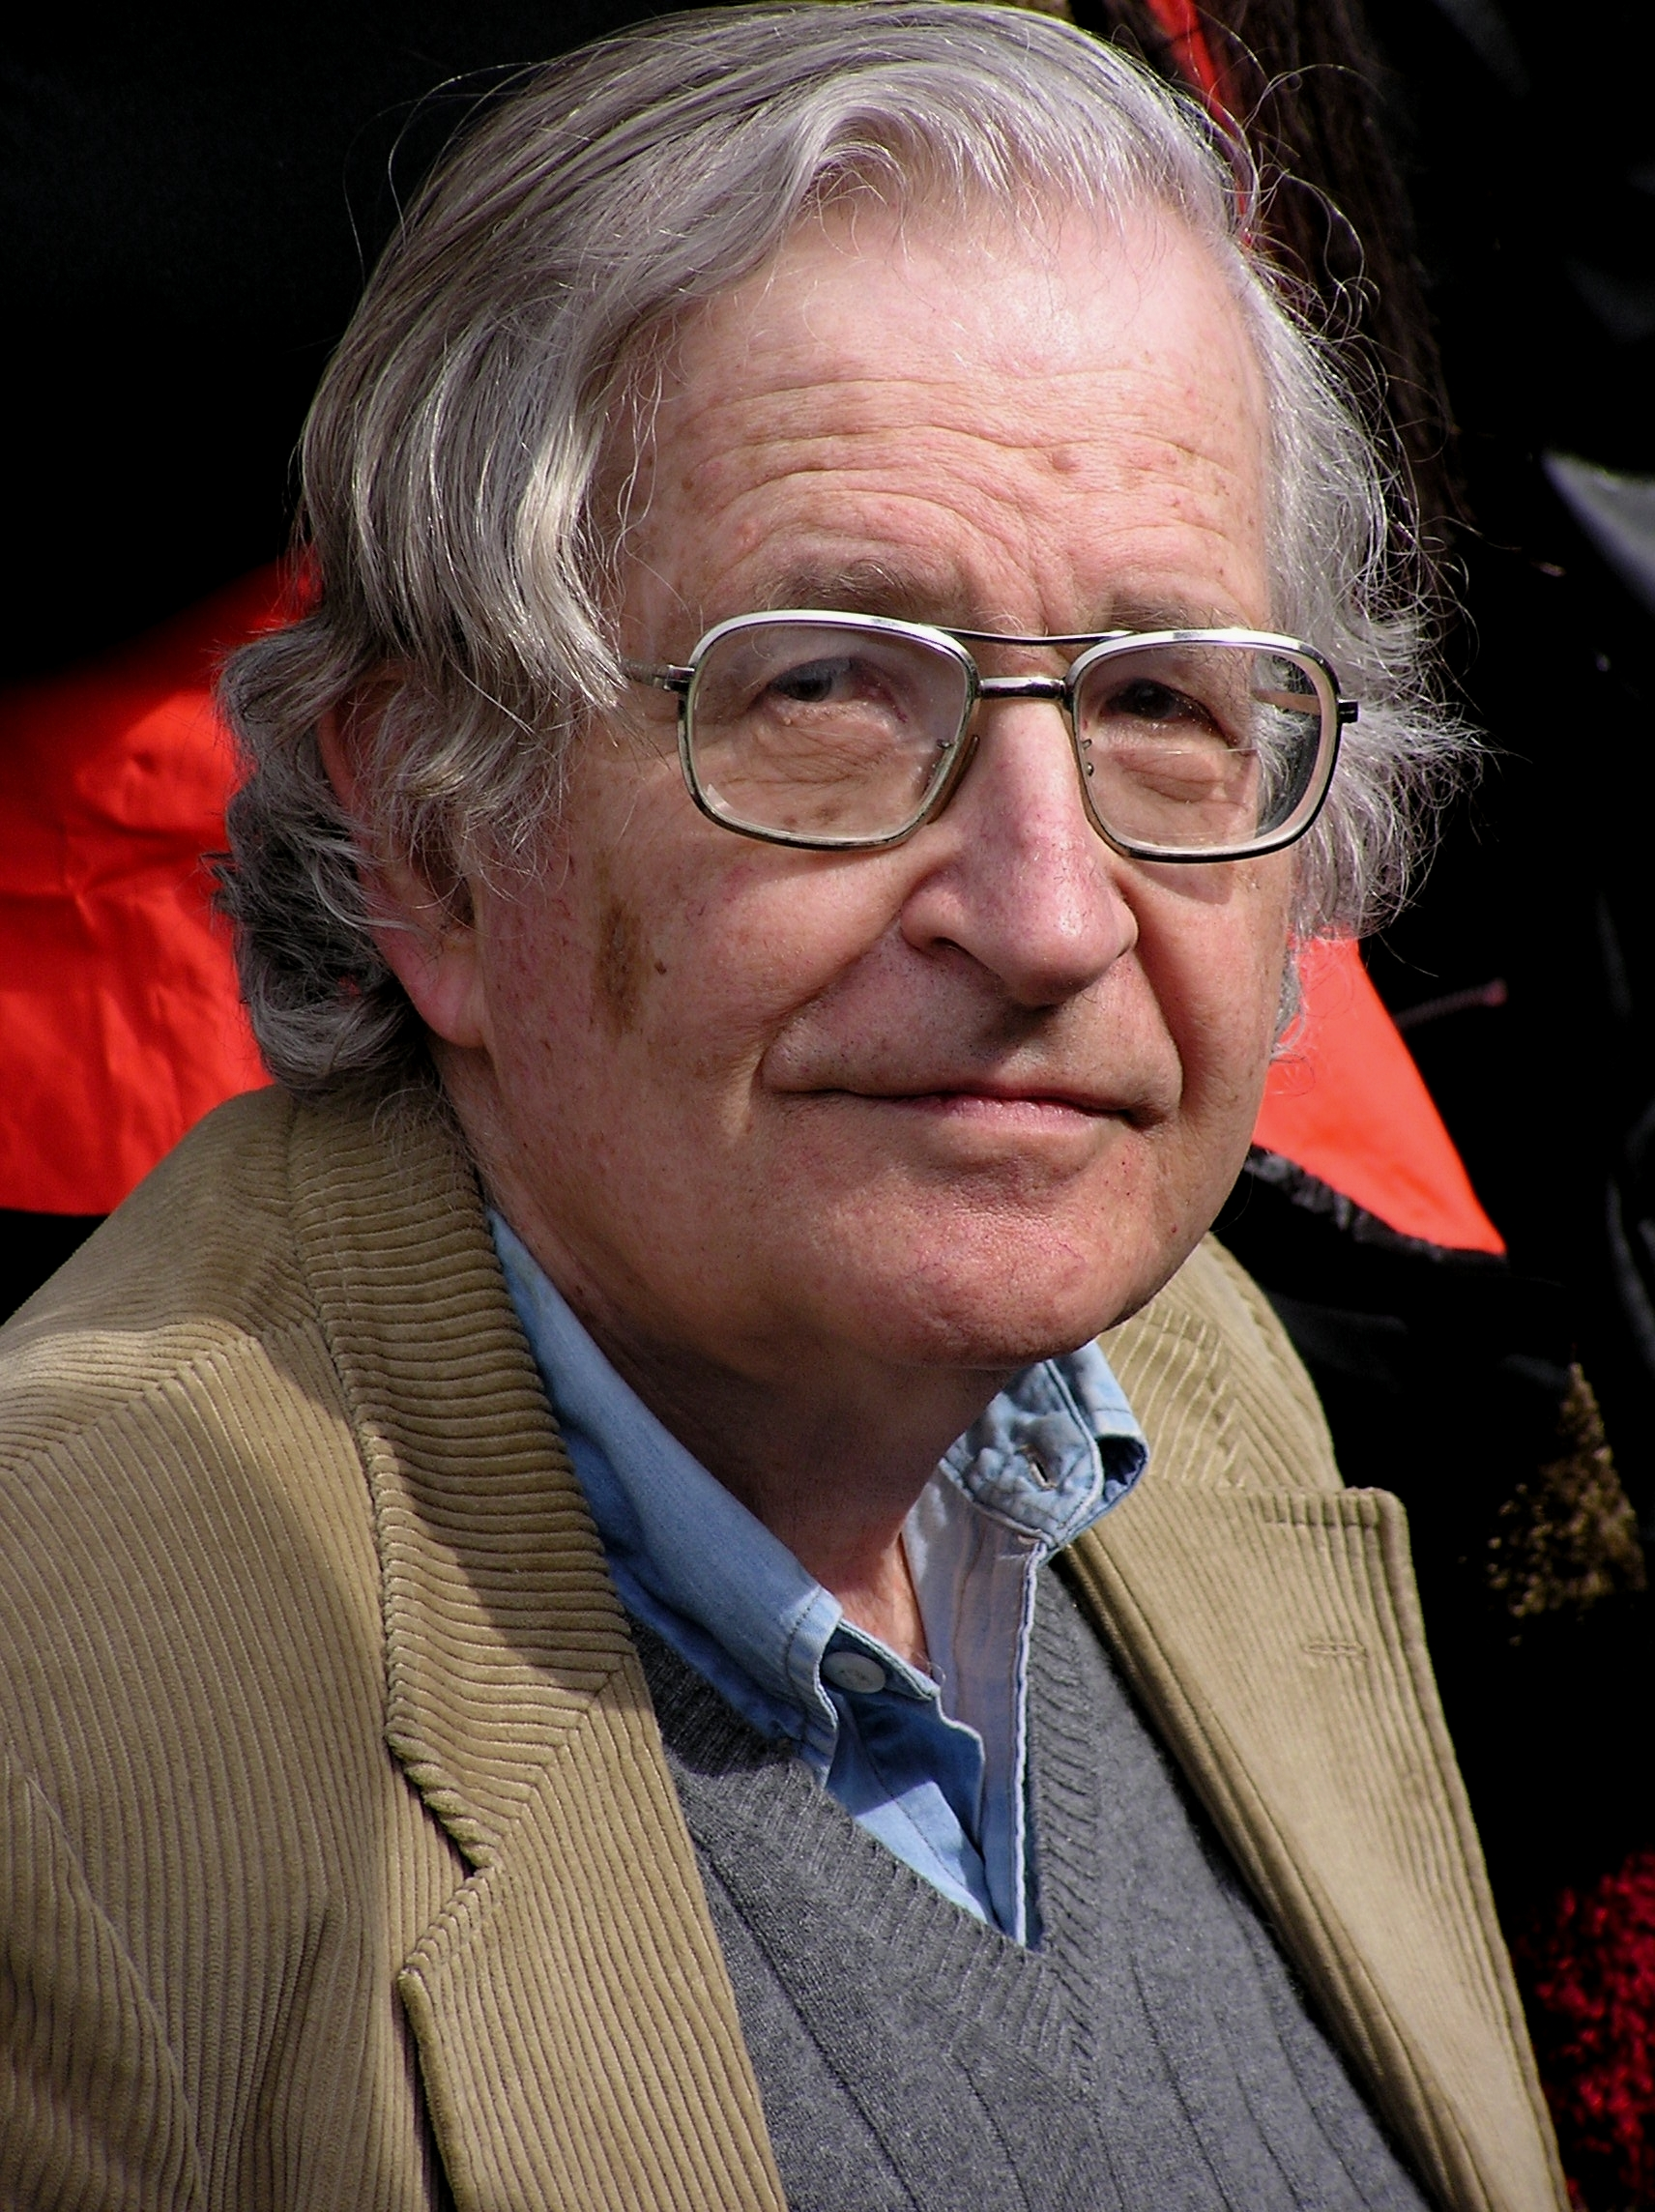 chomsky Noam Chomsky at Occupy Boston Saturday